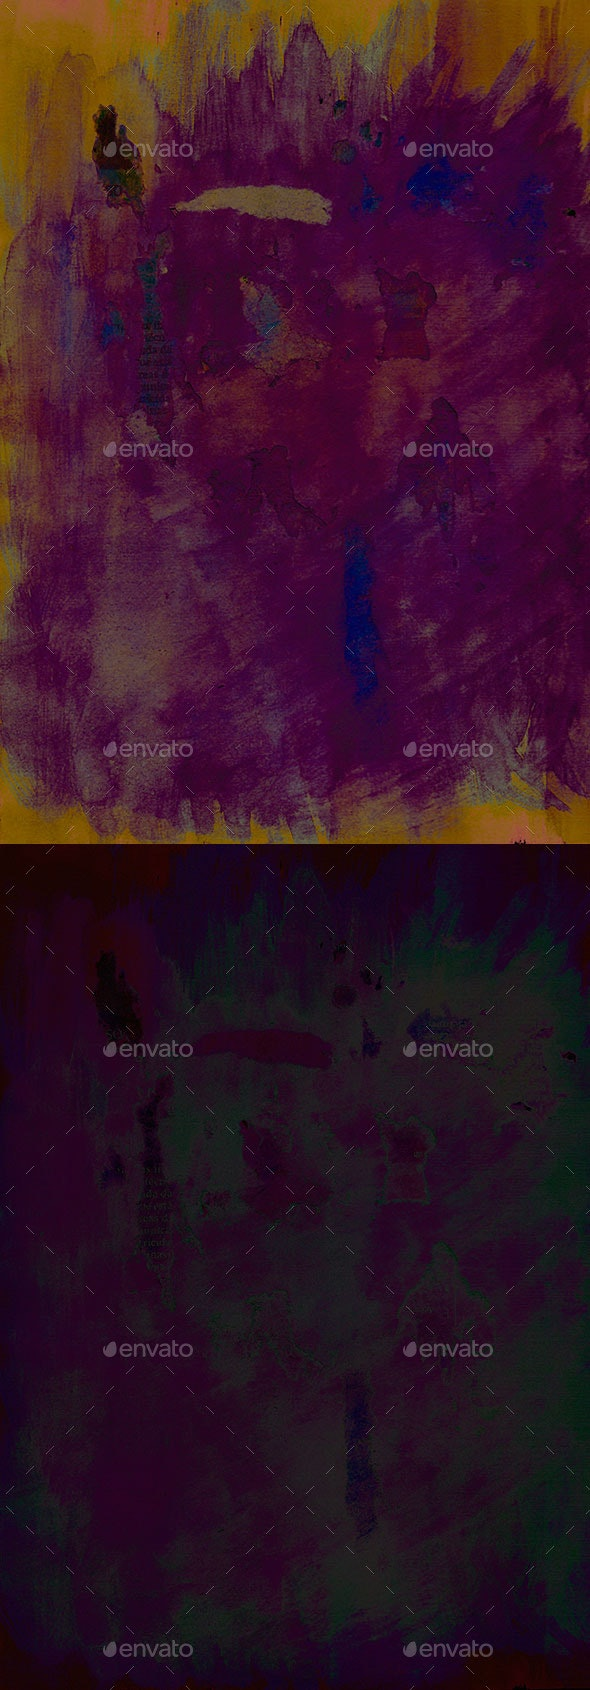 Grunge Purple Backgrounds